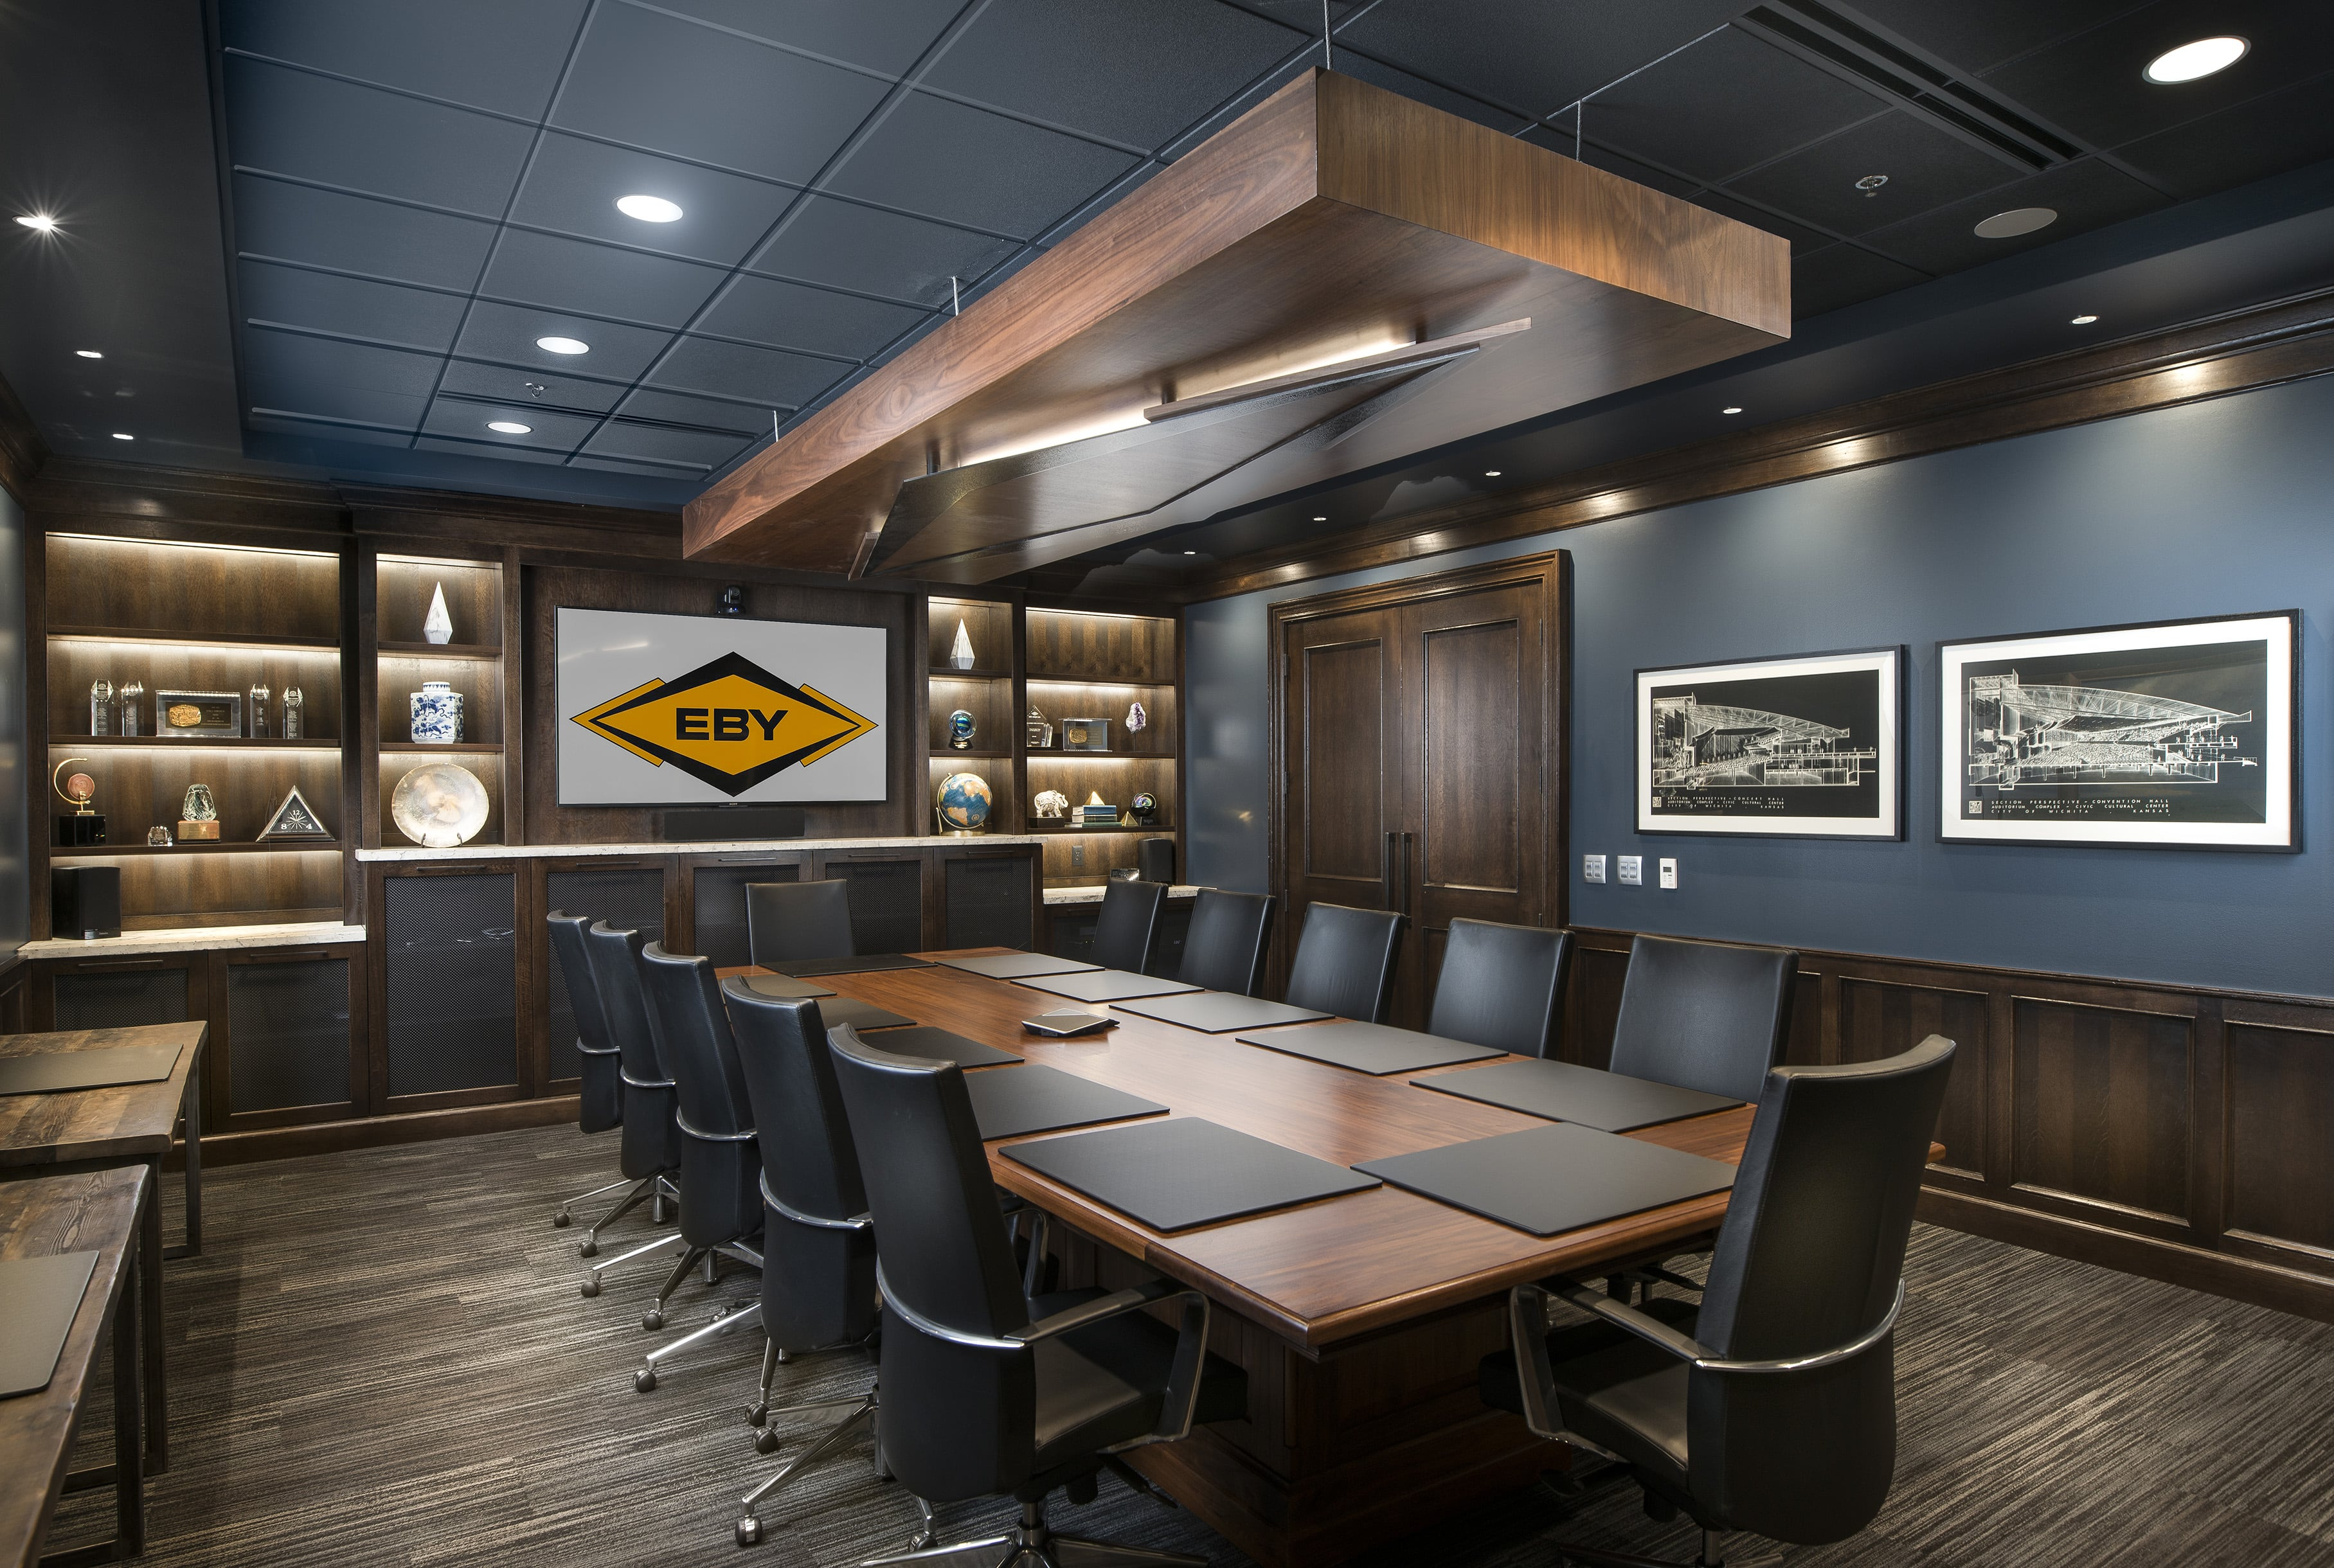 Eby Construction Conference Table